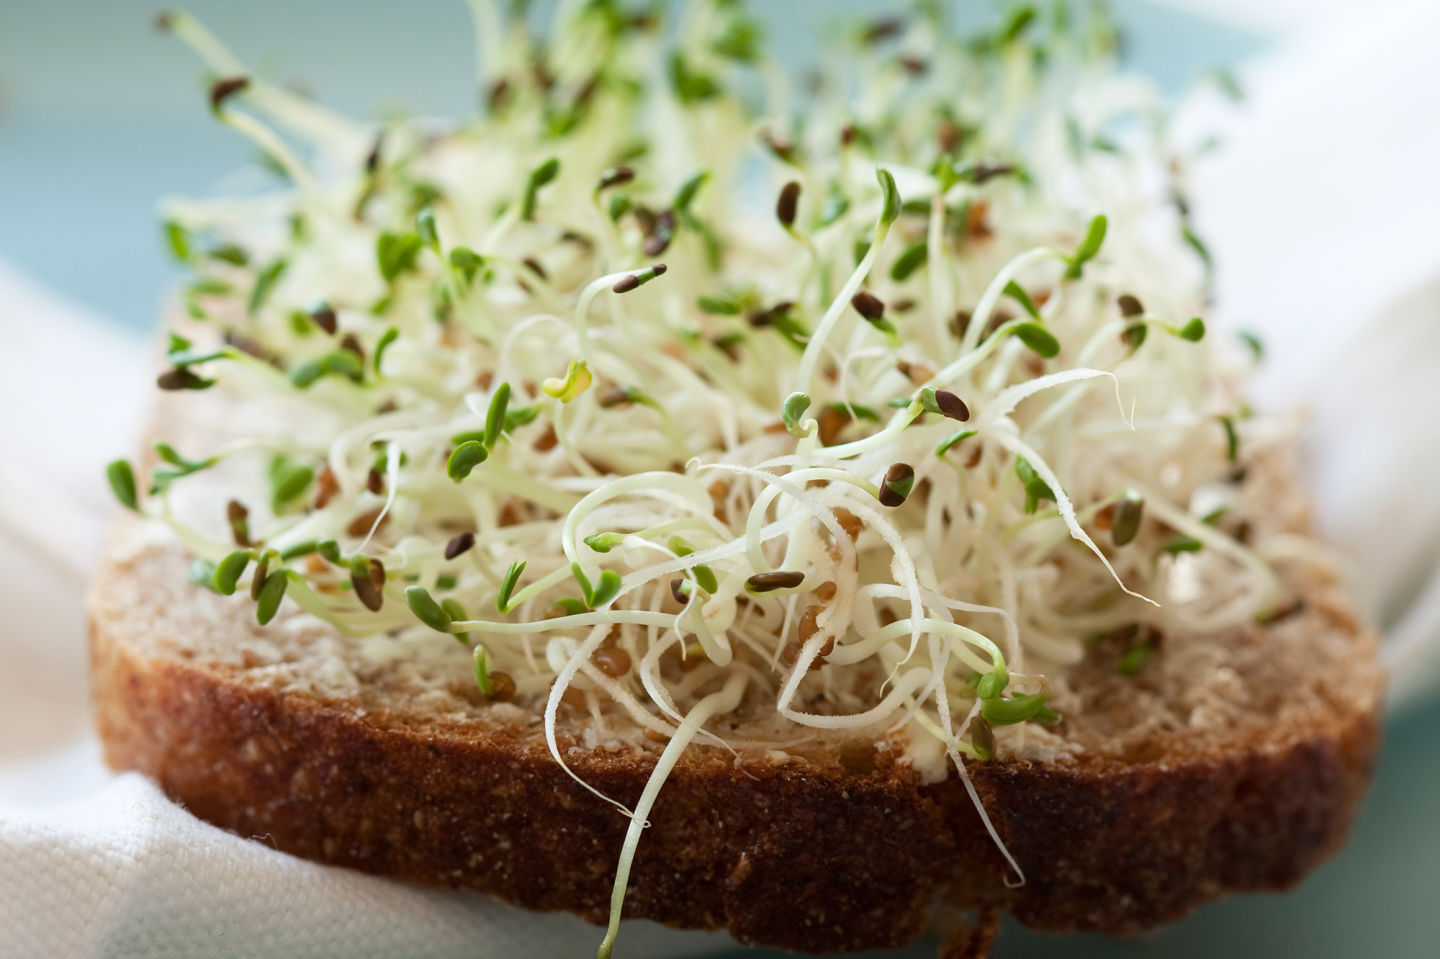 Should Sprouts Come With A Warning Label?